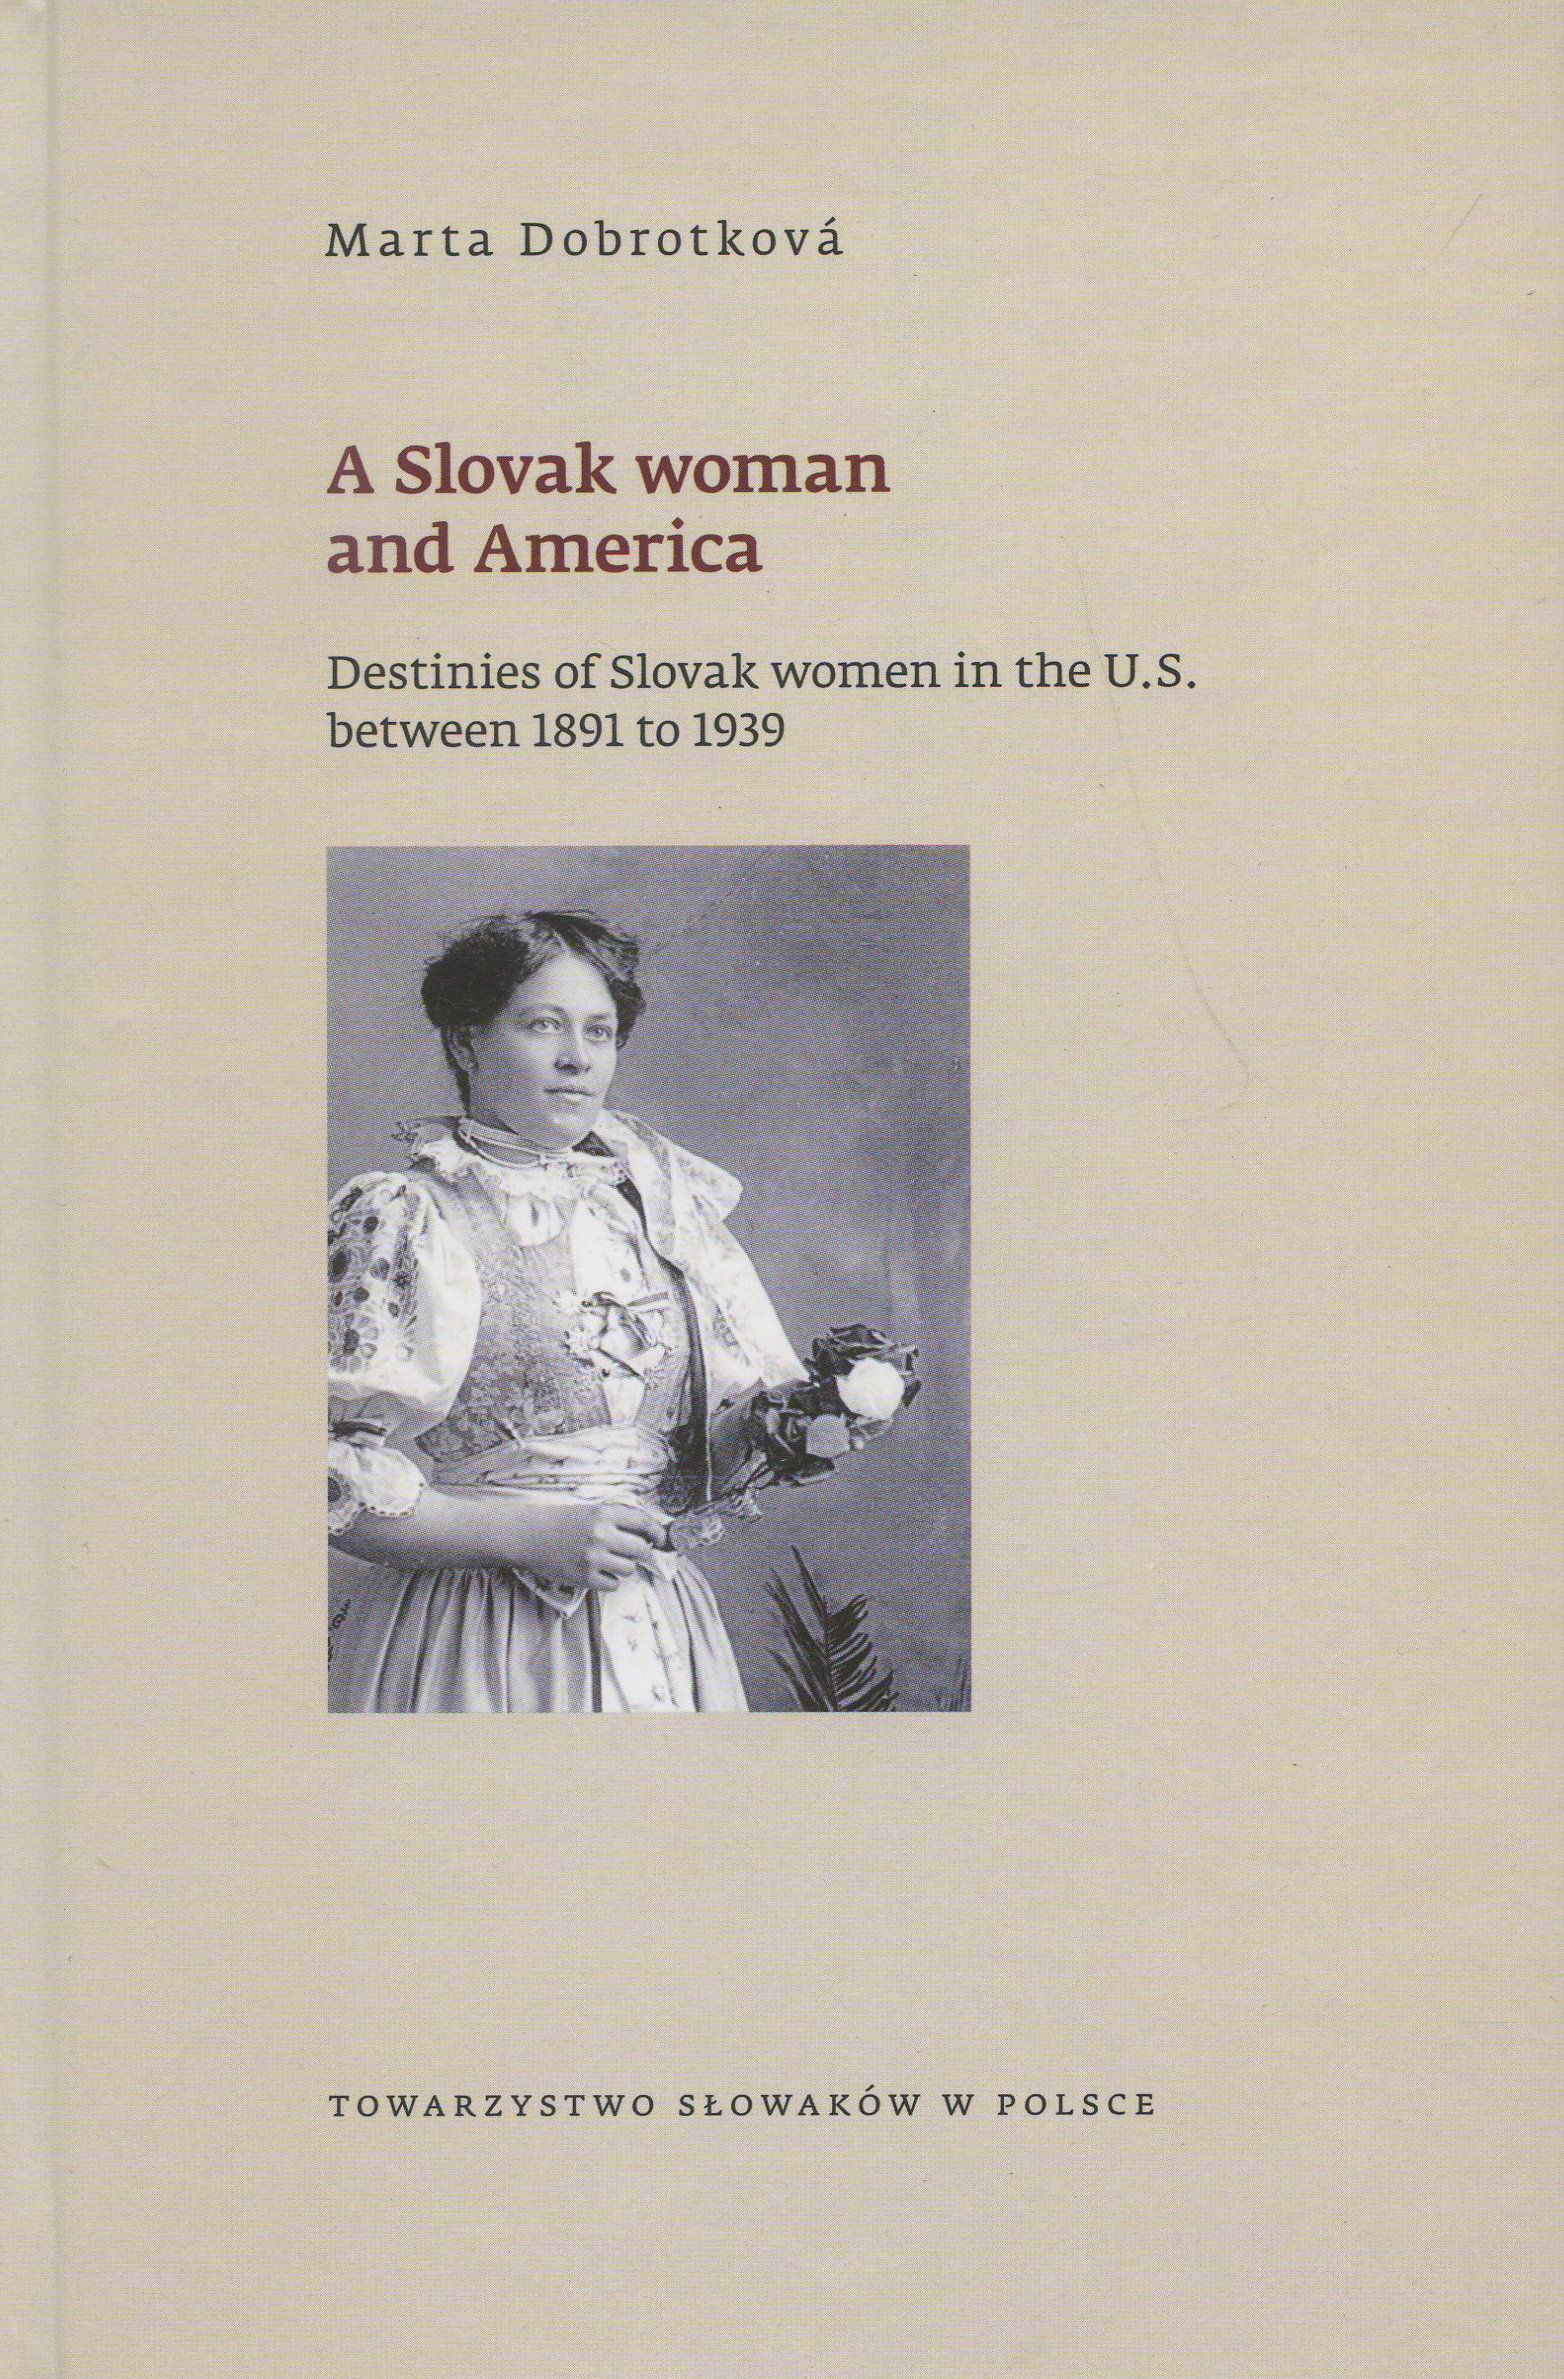 A Slovak woman and America - Destinies of Slovak women in the U.S. between 1891 to 1939